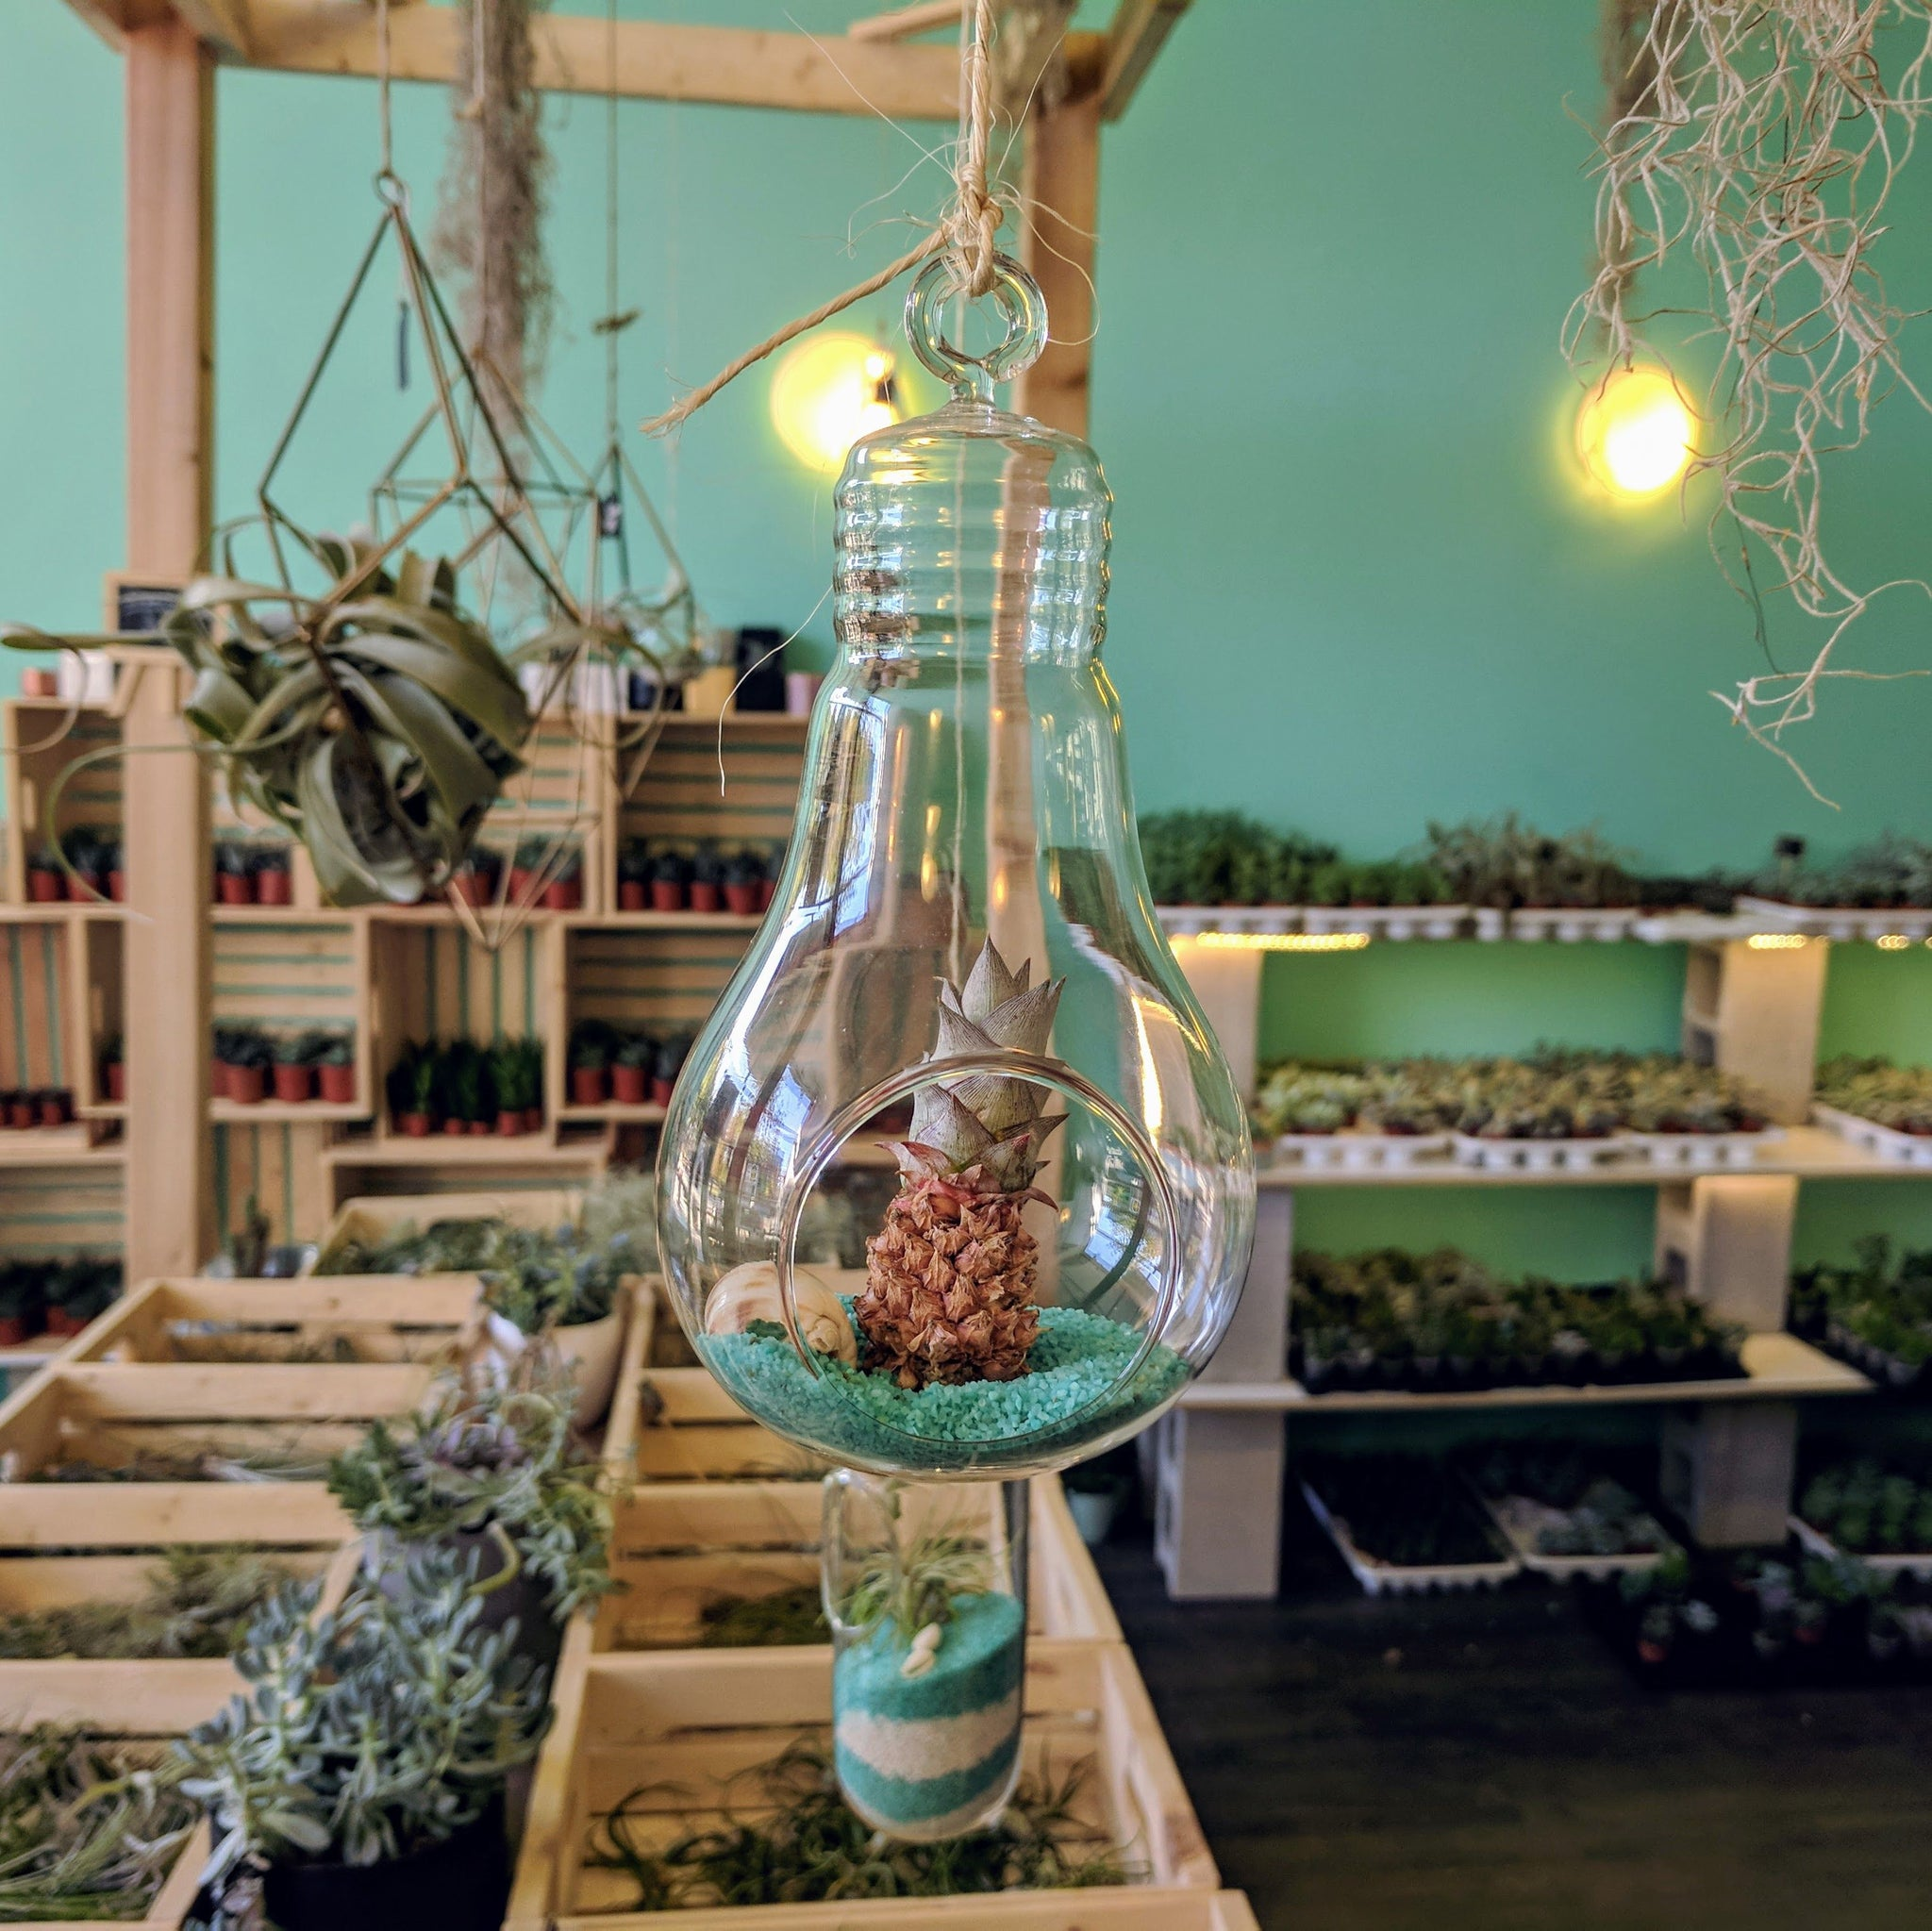 DIY Air Plant Terrarium Kit - Lightbulb - By Succuterra | Succulents, Air Plants & Terrariums